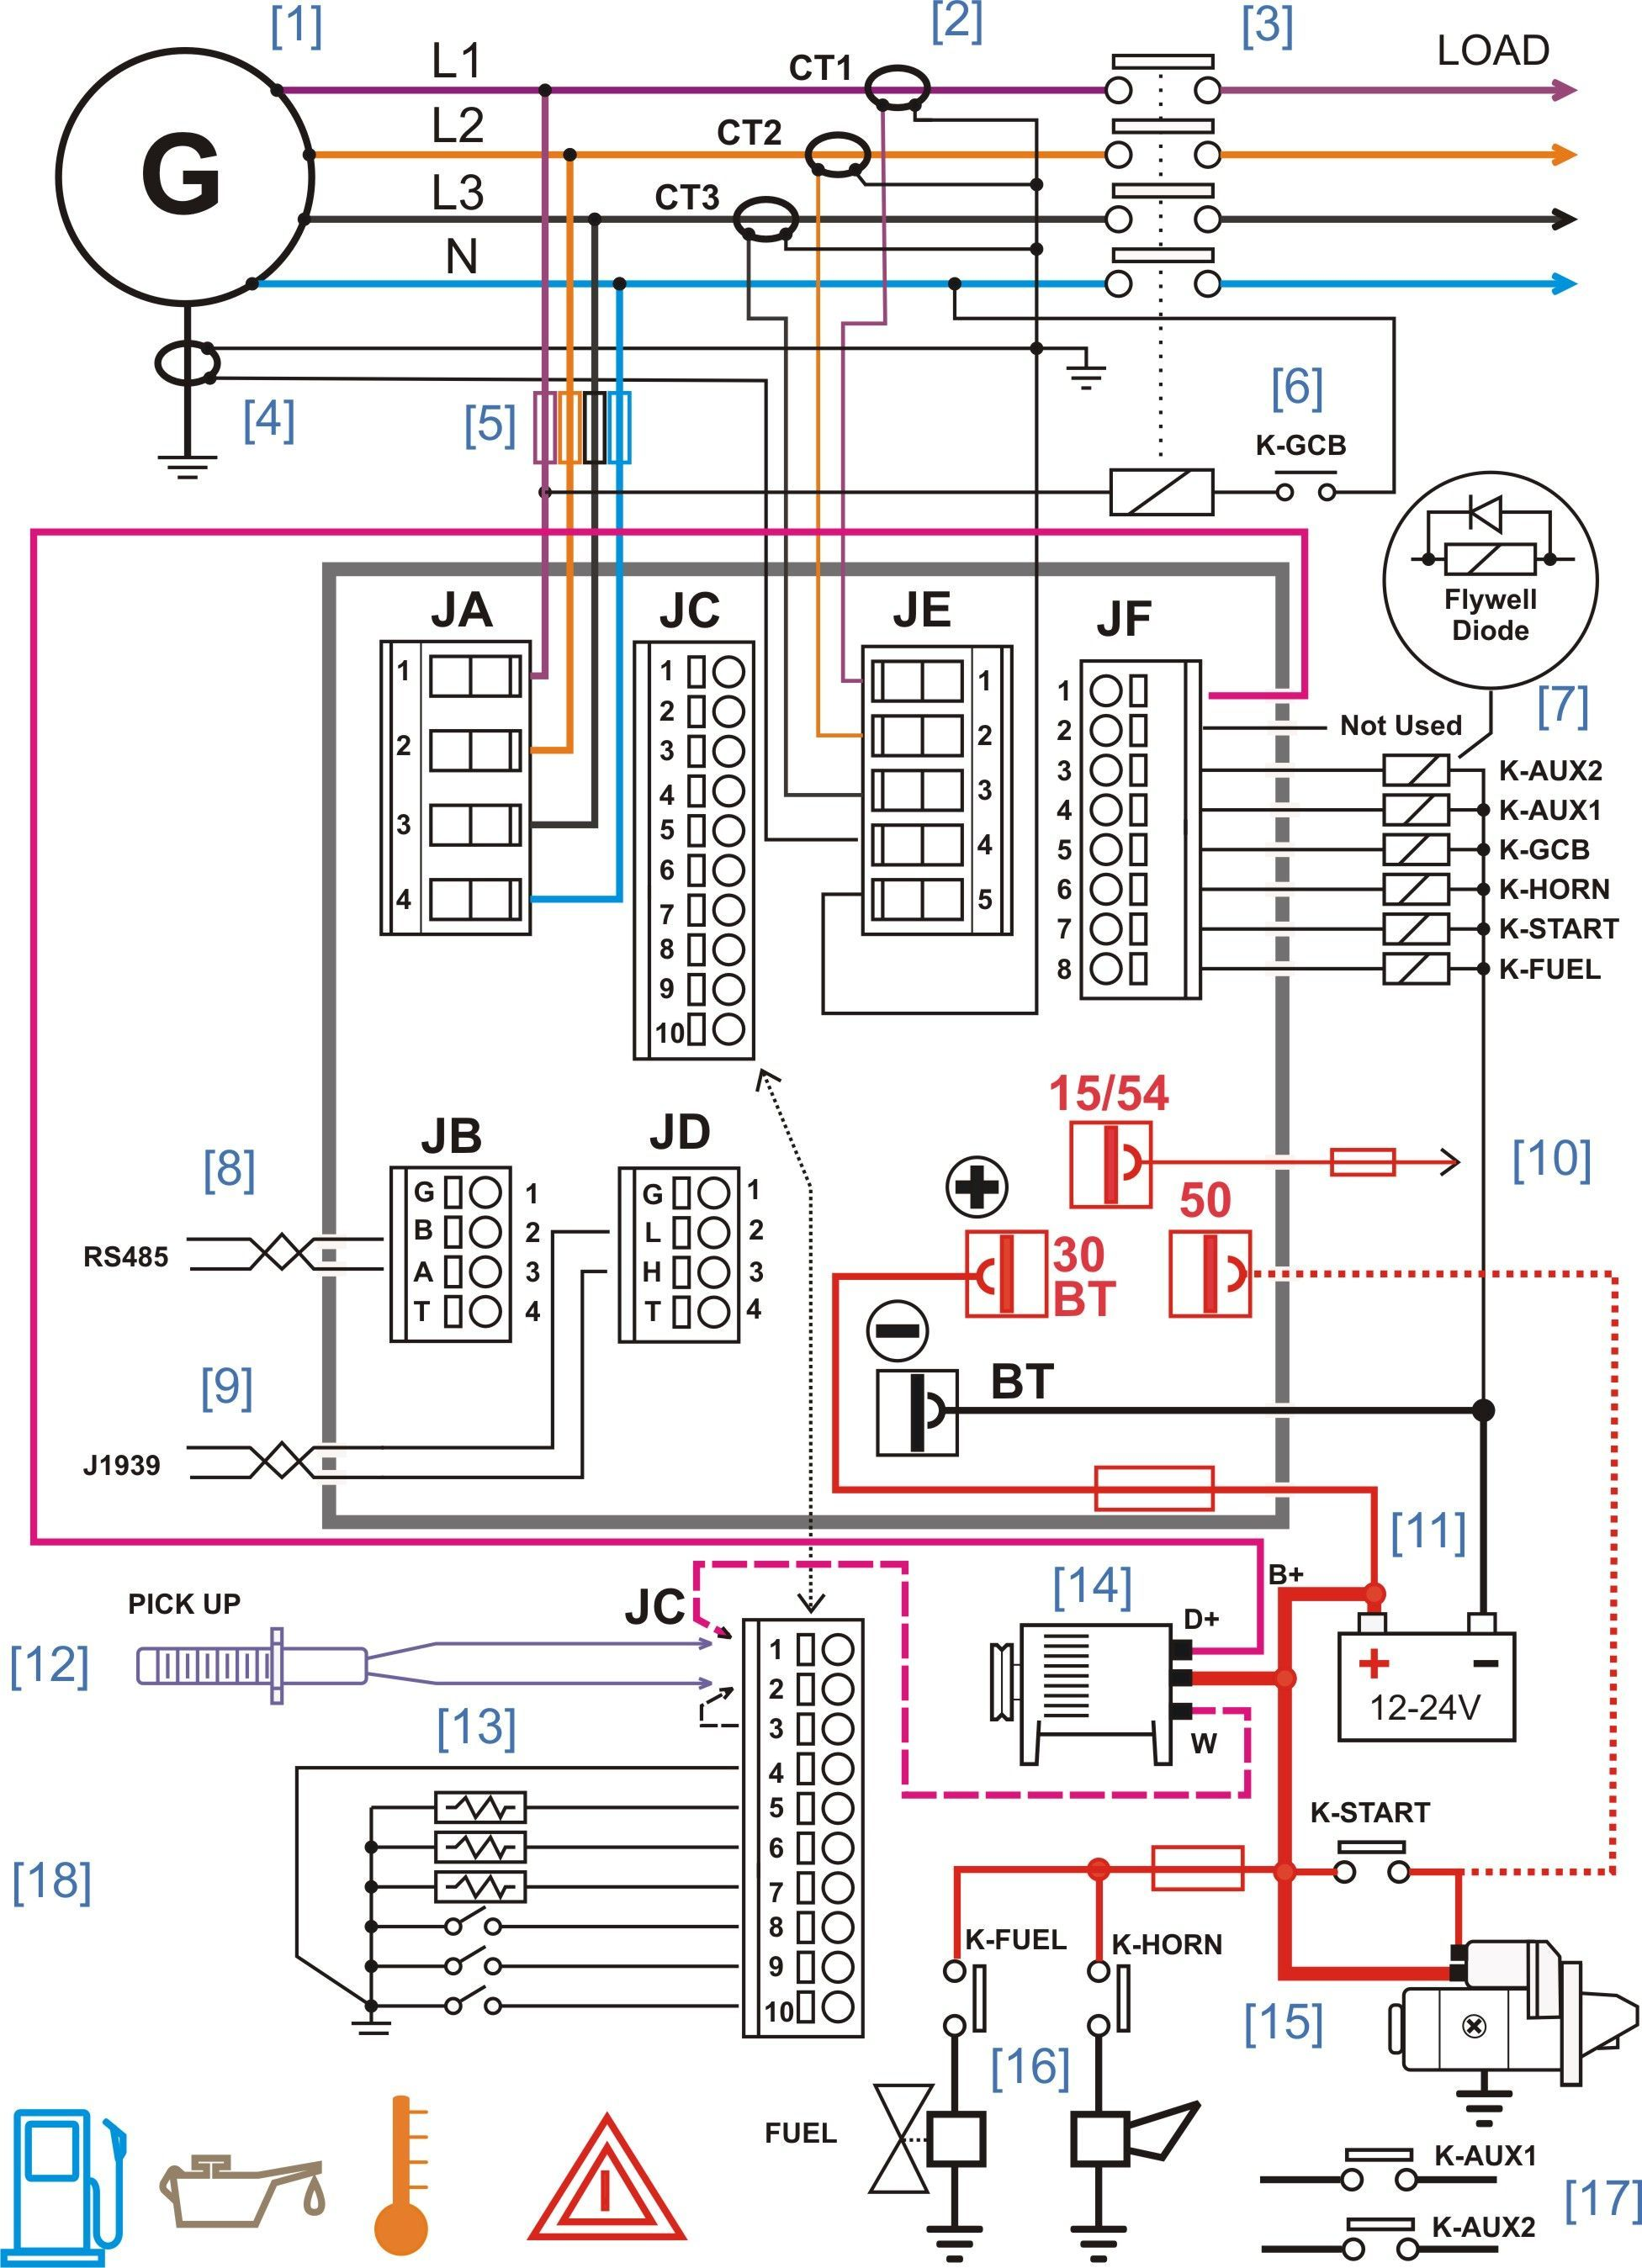 21 Clever Home Wiring Diagram Software Free Design Https Bacamajalah Com 21 Clever Electrical Circuit Diagram Electrical Diagram Electrical Wiring Diagram